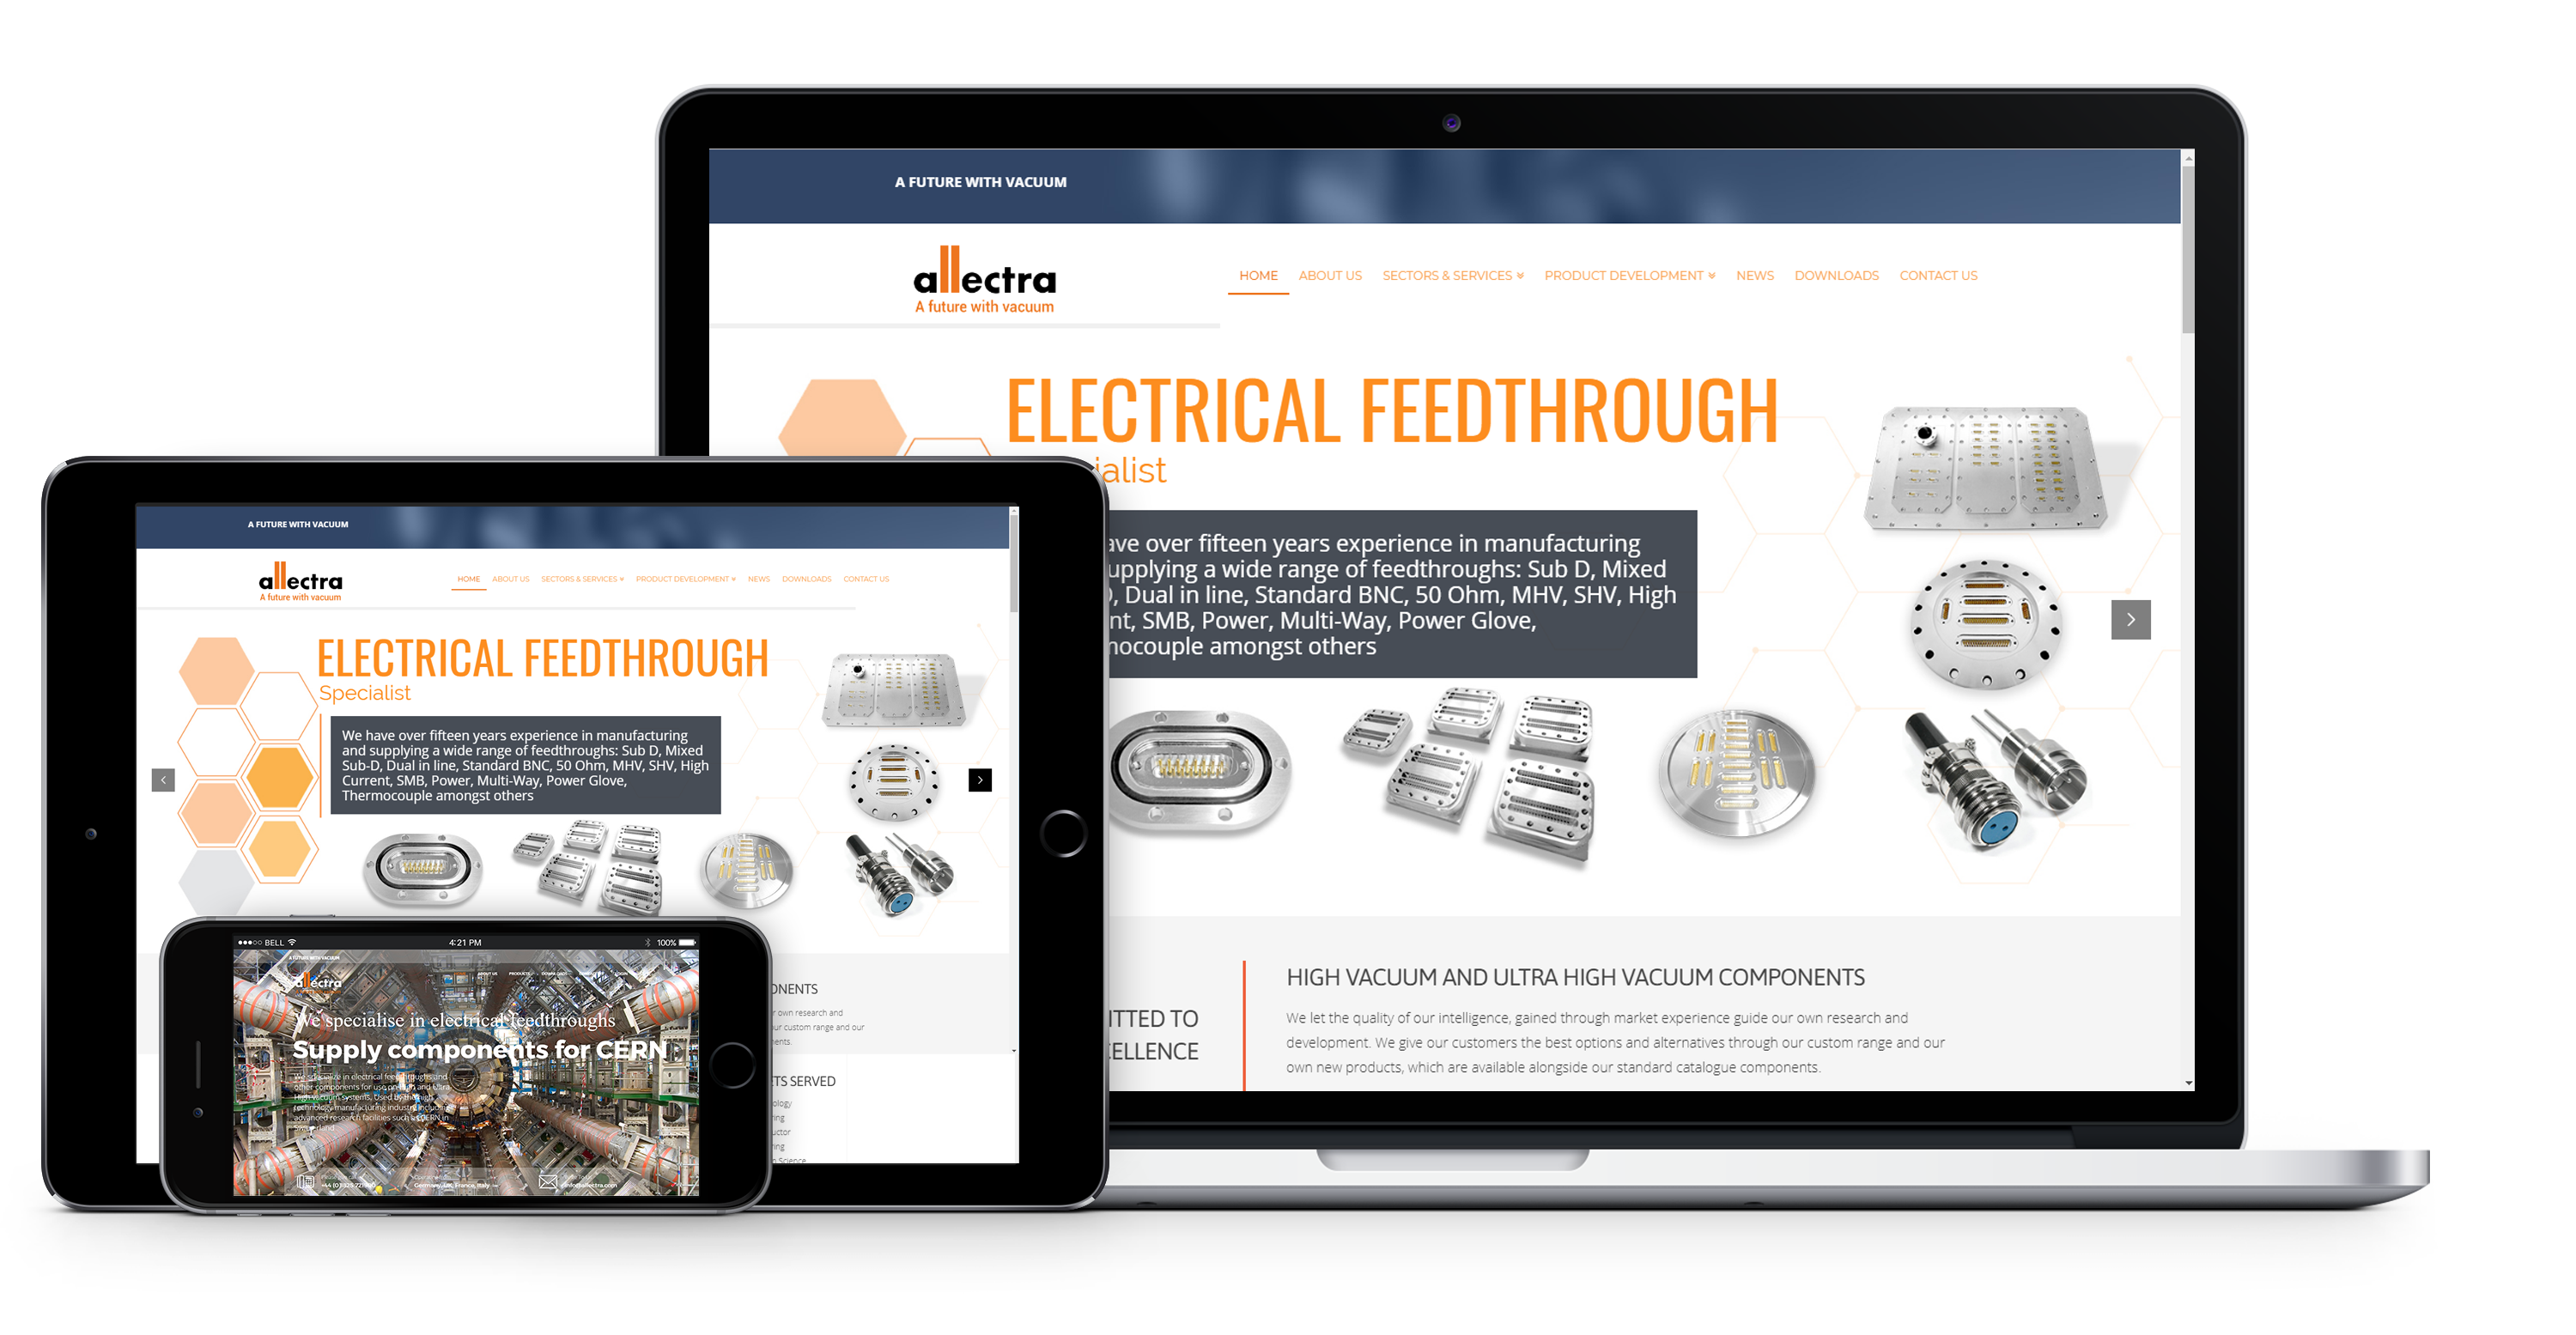 case study - allectra website